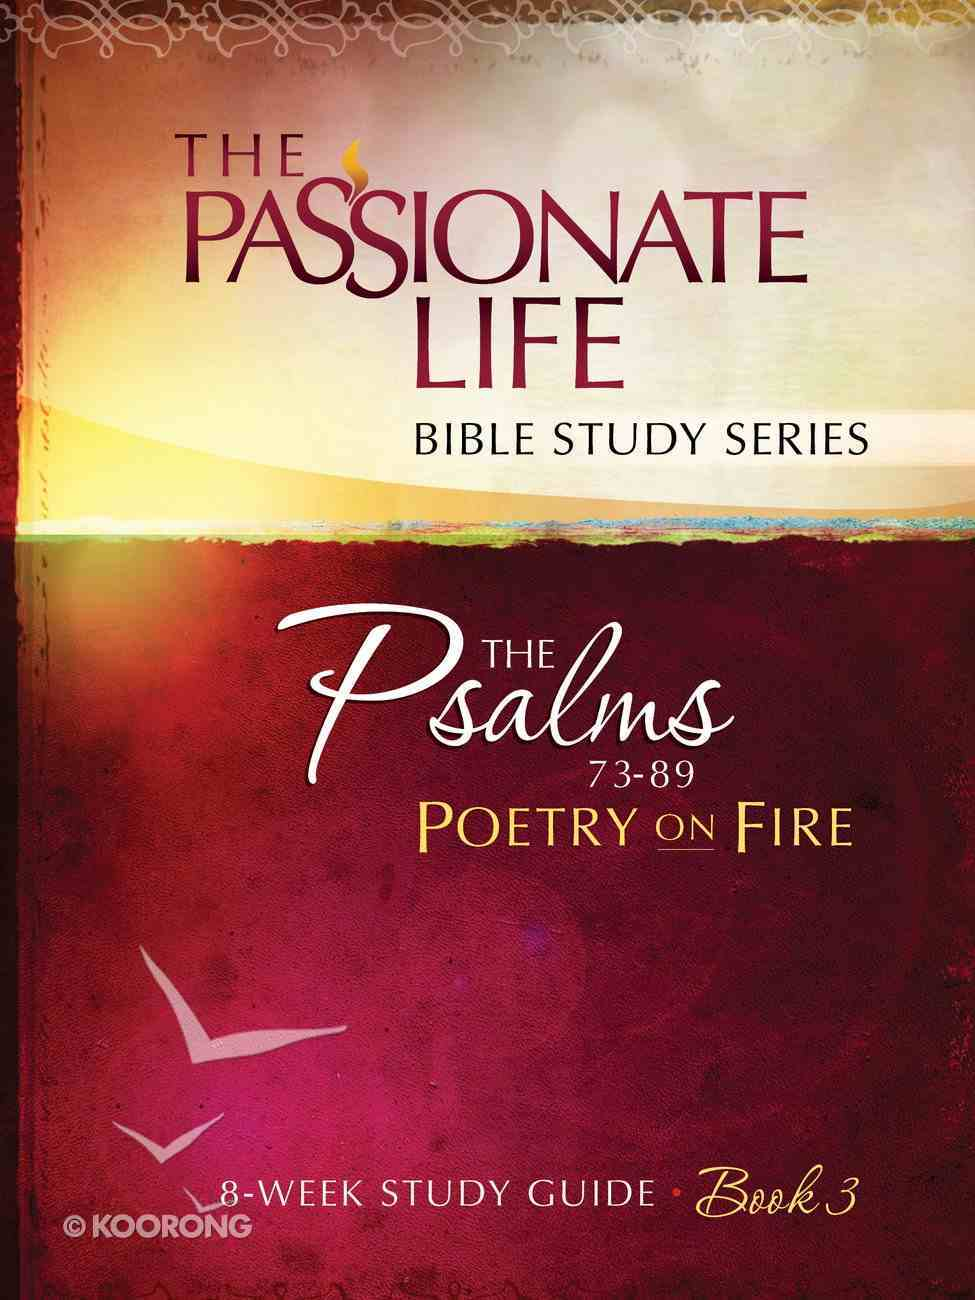 Psalms: Poetry on Fire Book Three 8-Week Study Guide (The Passionate Life Bible Study Series) eBook